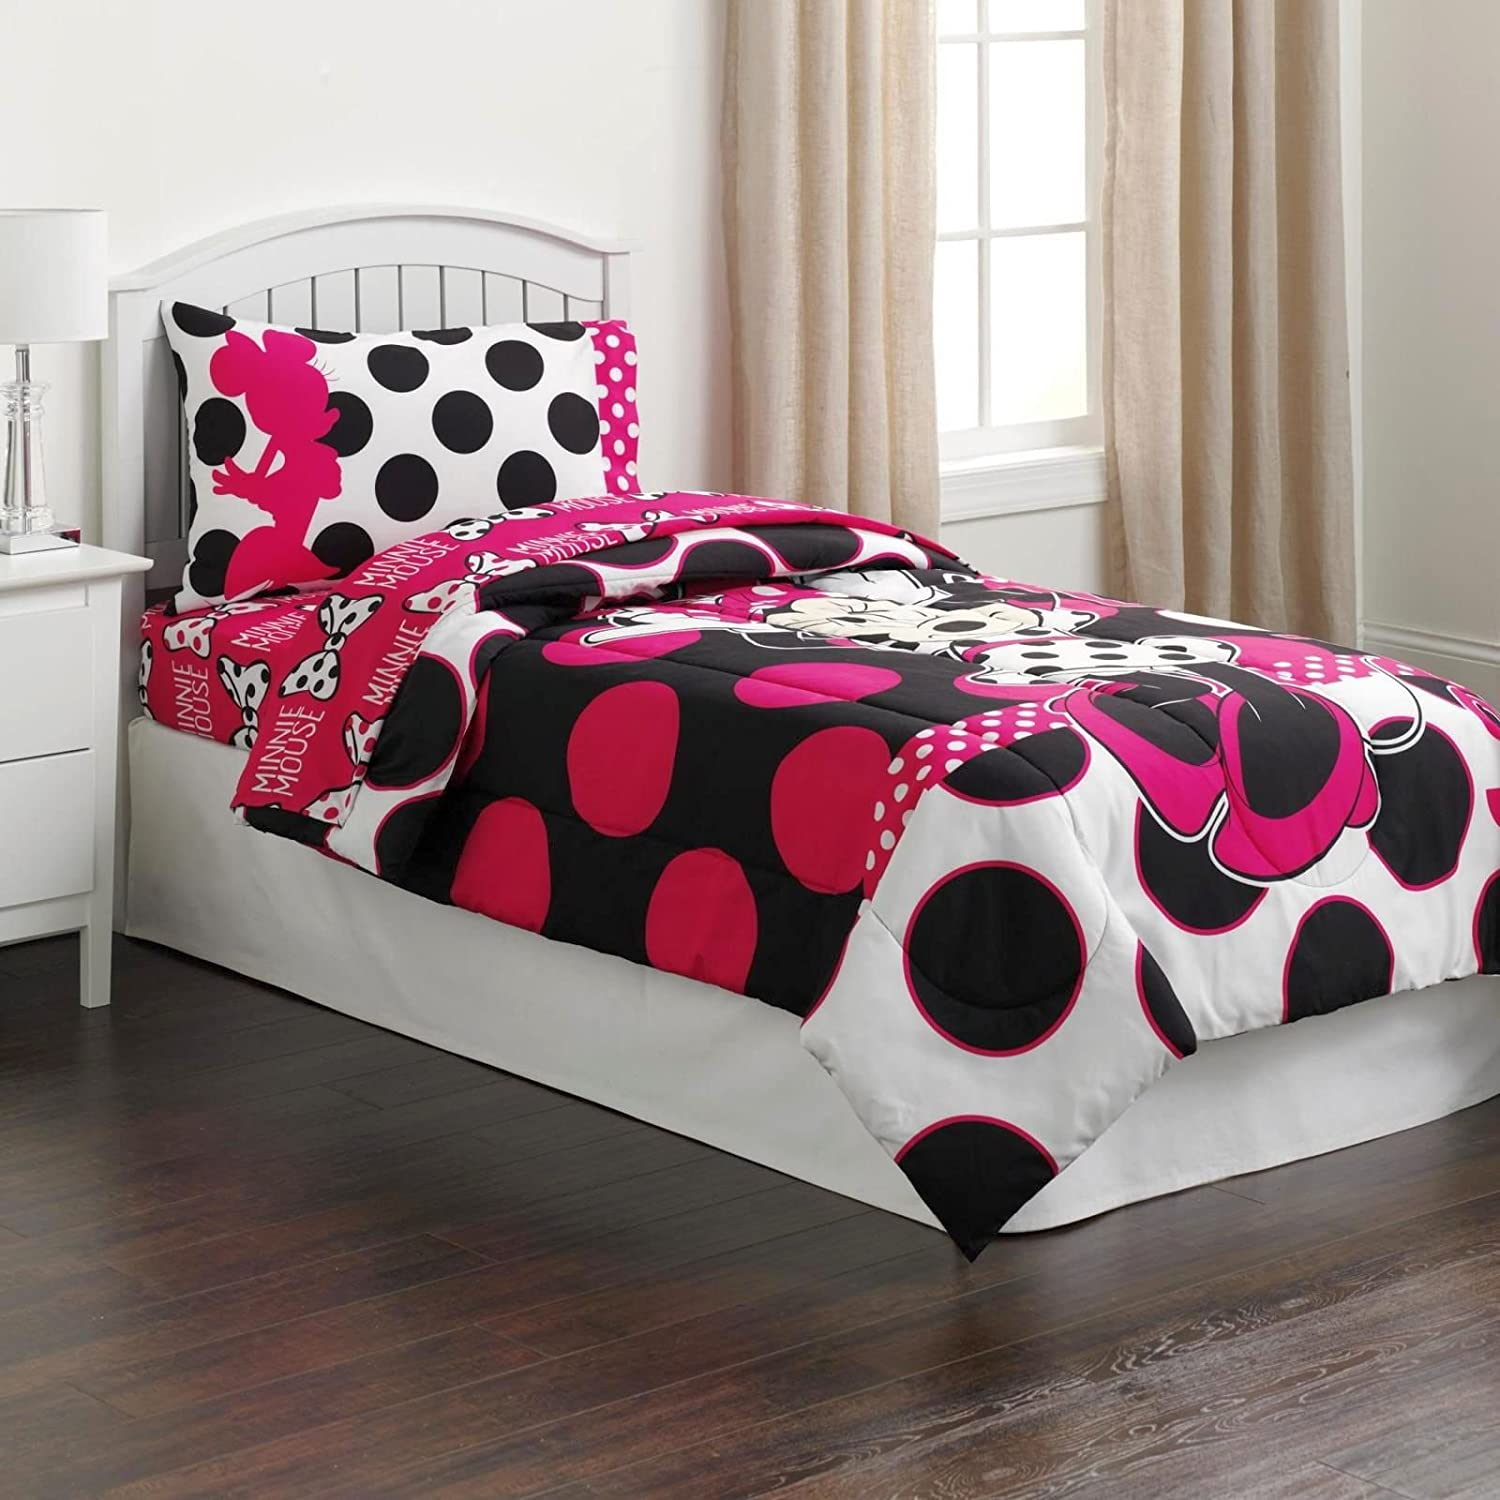 Amazon Com Disney Minnie Mouse Twin Sized 4 Piece Bedding Set